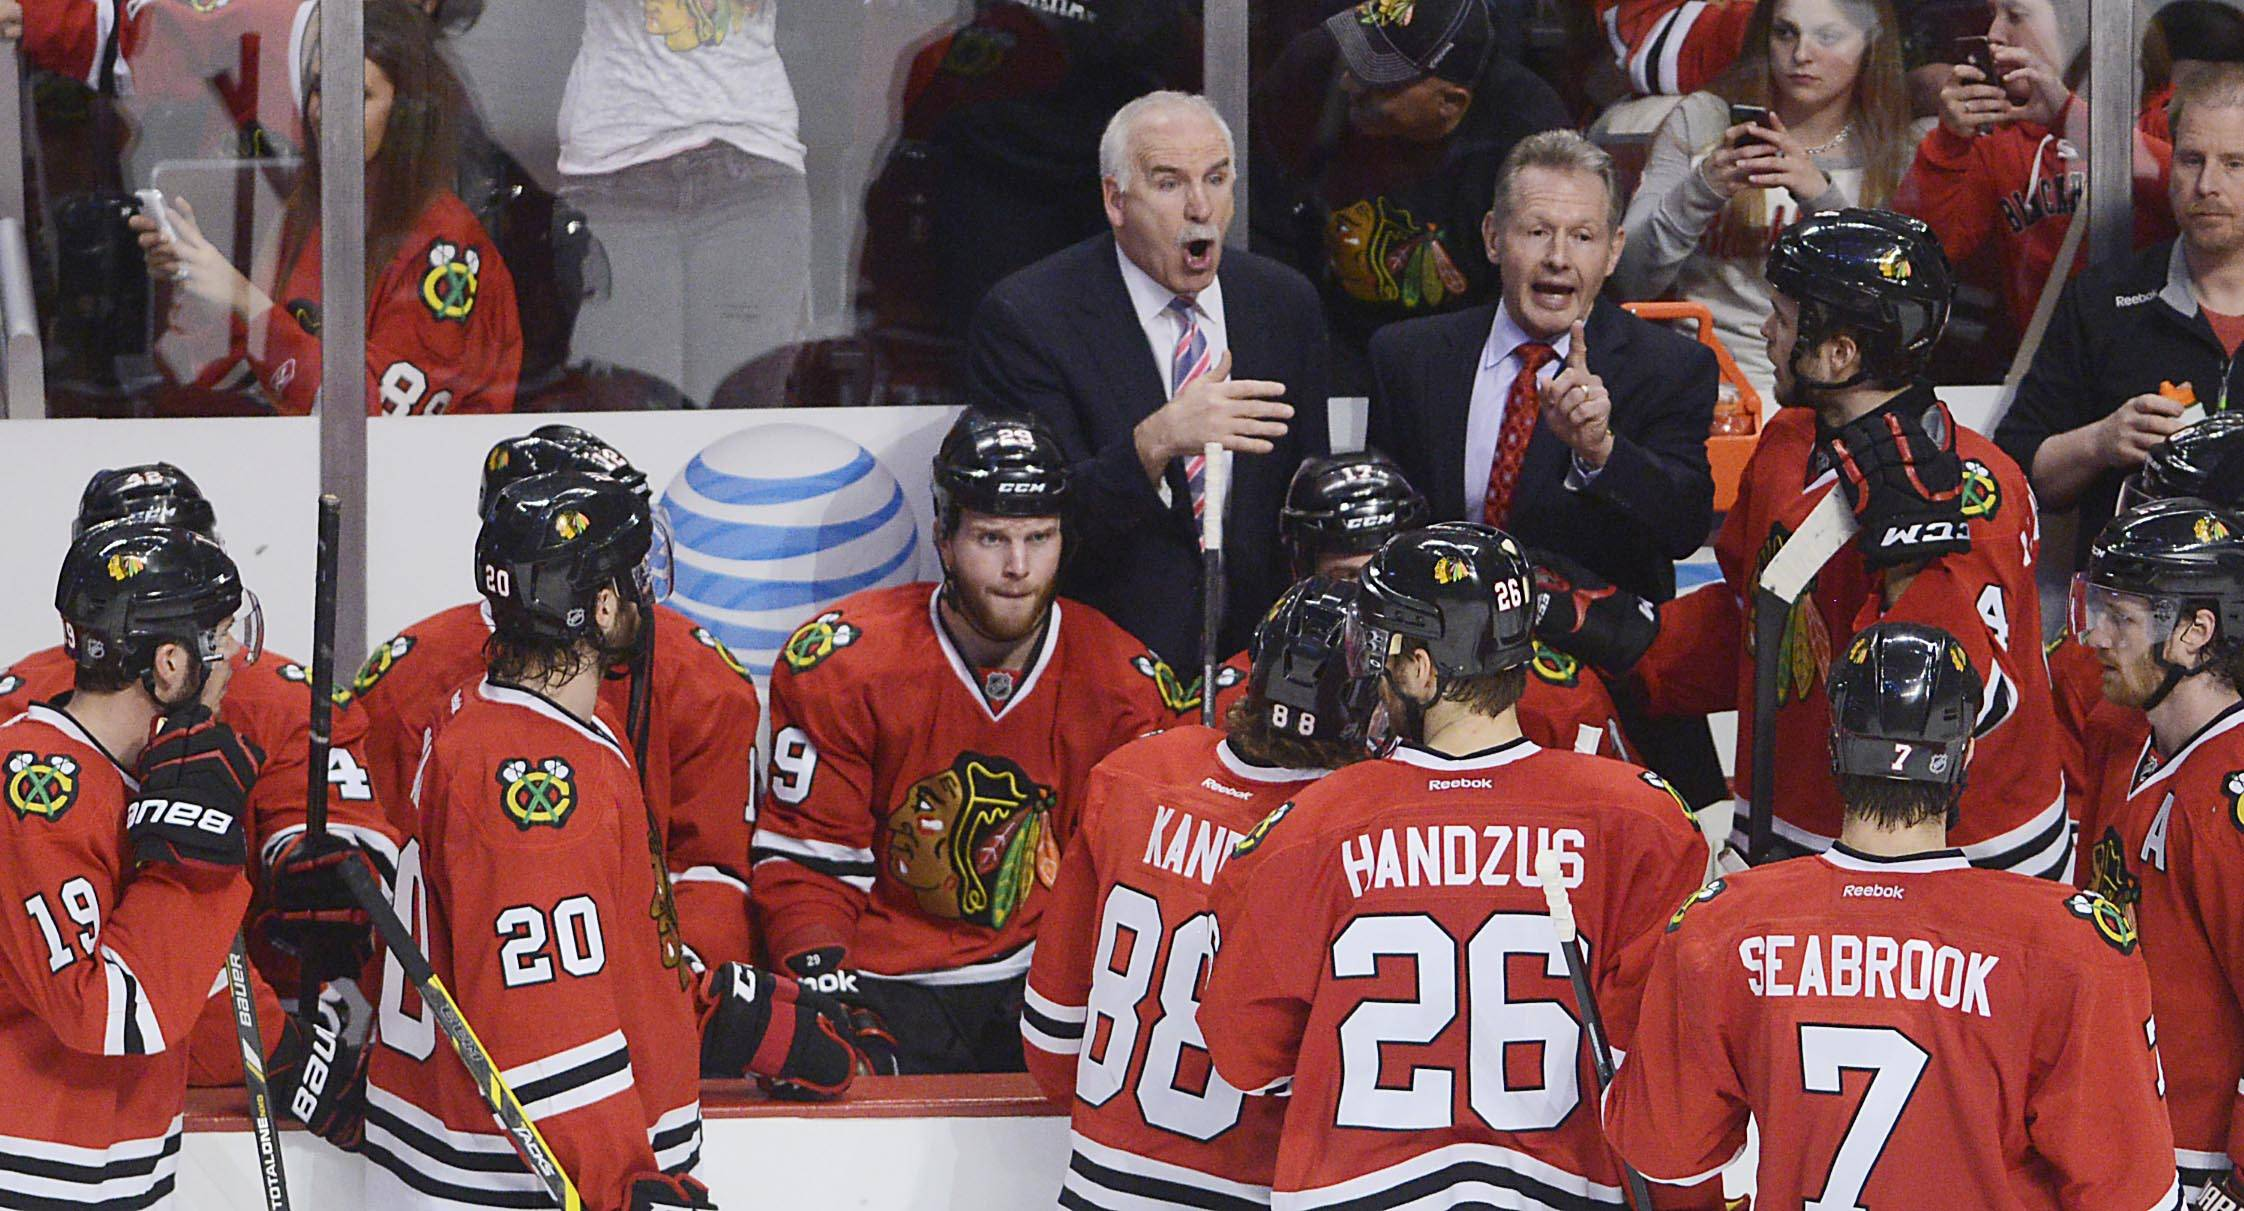 Chicago Blackhawks coach Joel Quenneville directs his team during a timeout with less than three minutes to play.